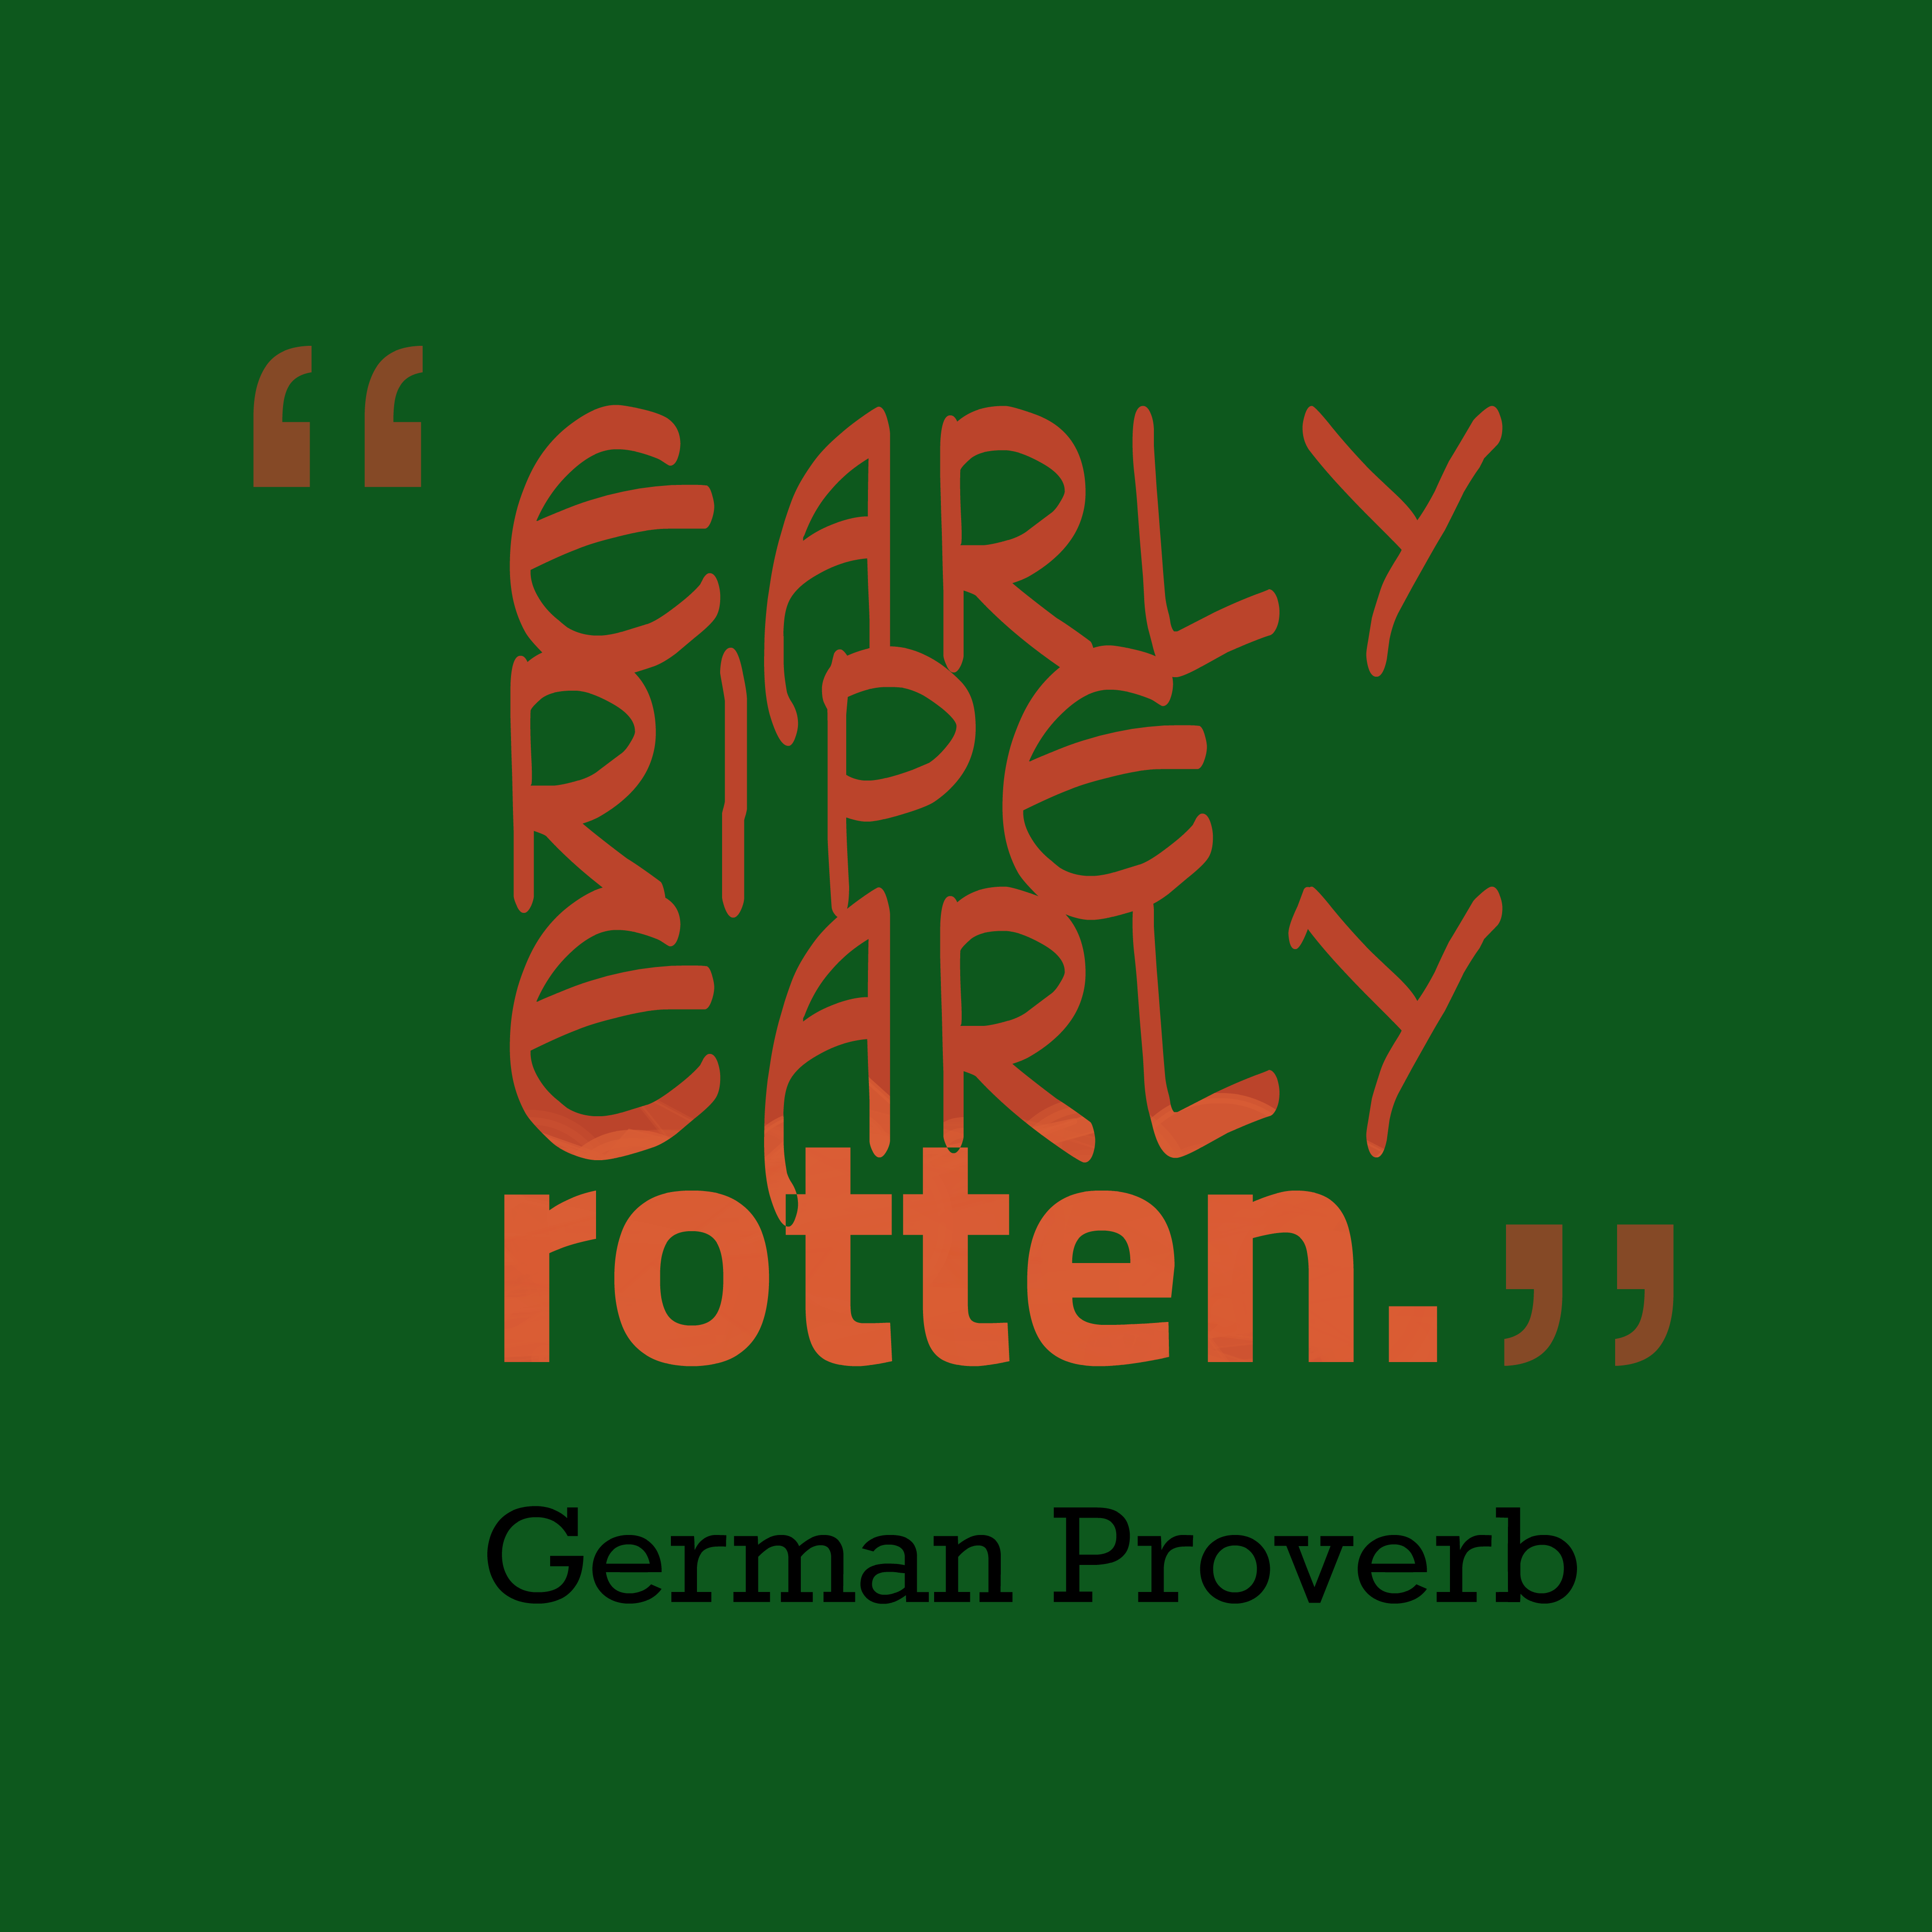 Quotes image of Early ripe, early rotten.